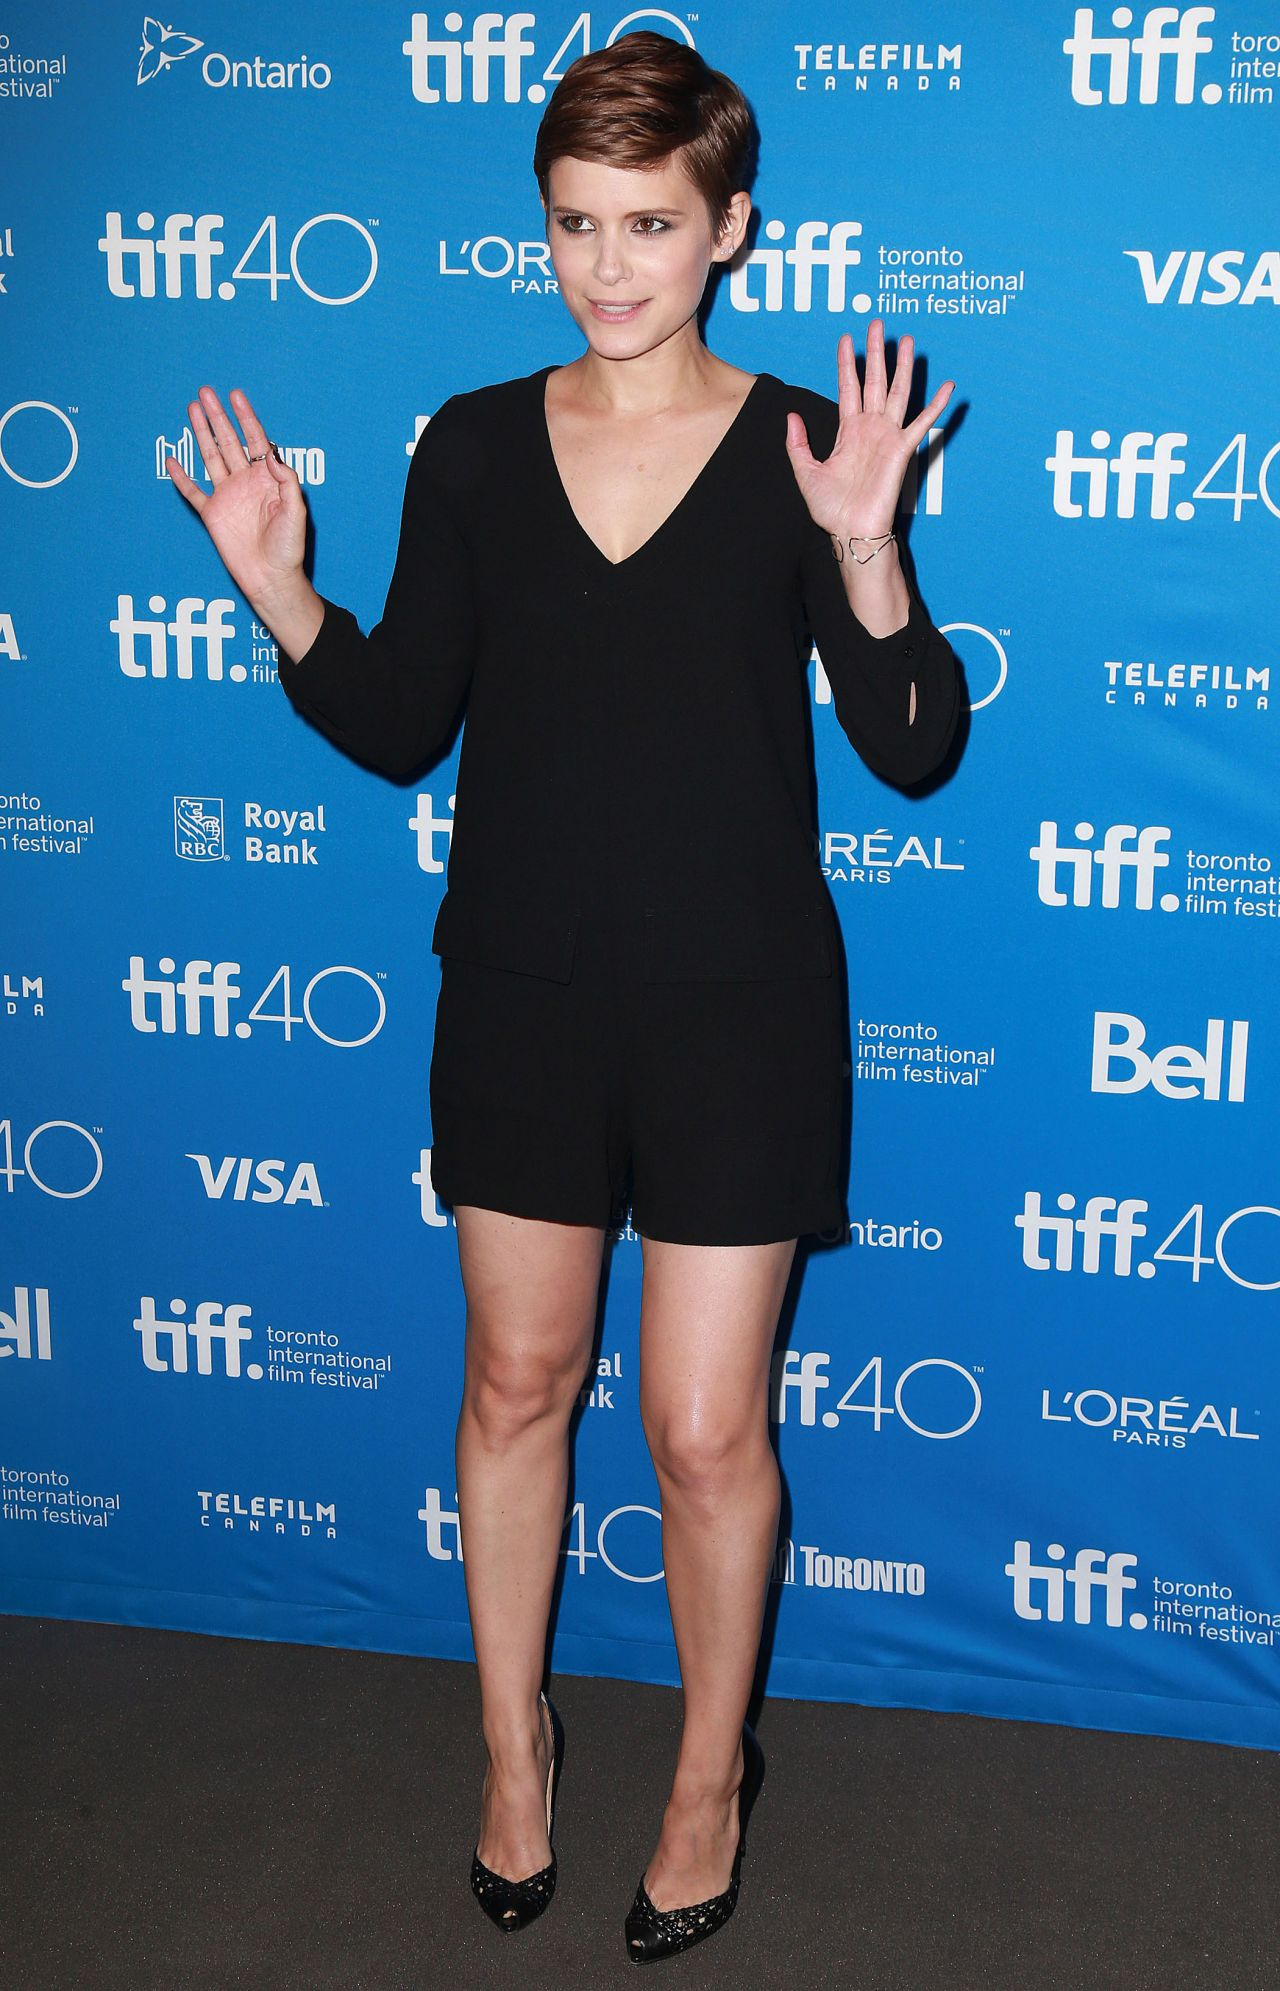 kate-mara-man-down-press-conference-at-2015-toronto-international-film-festival_4